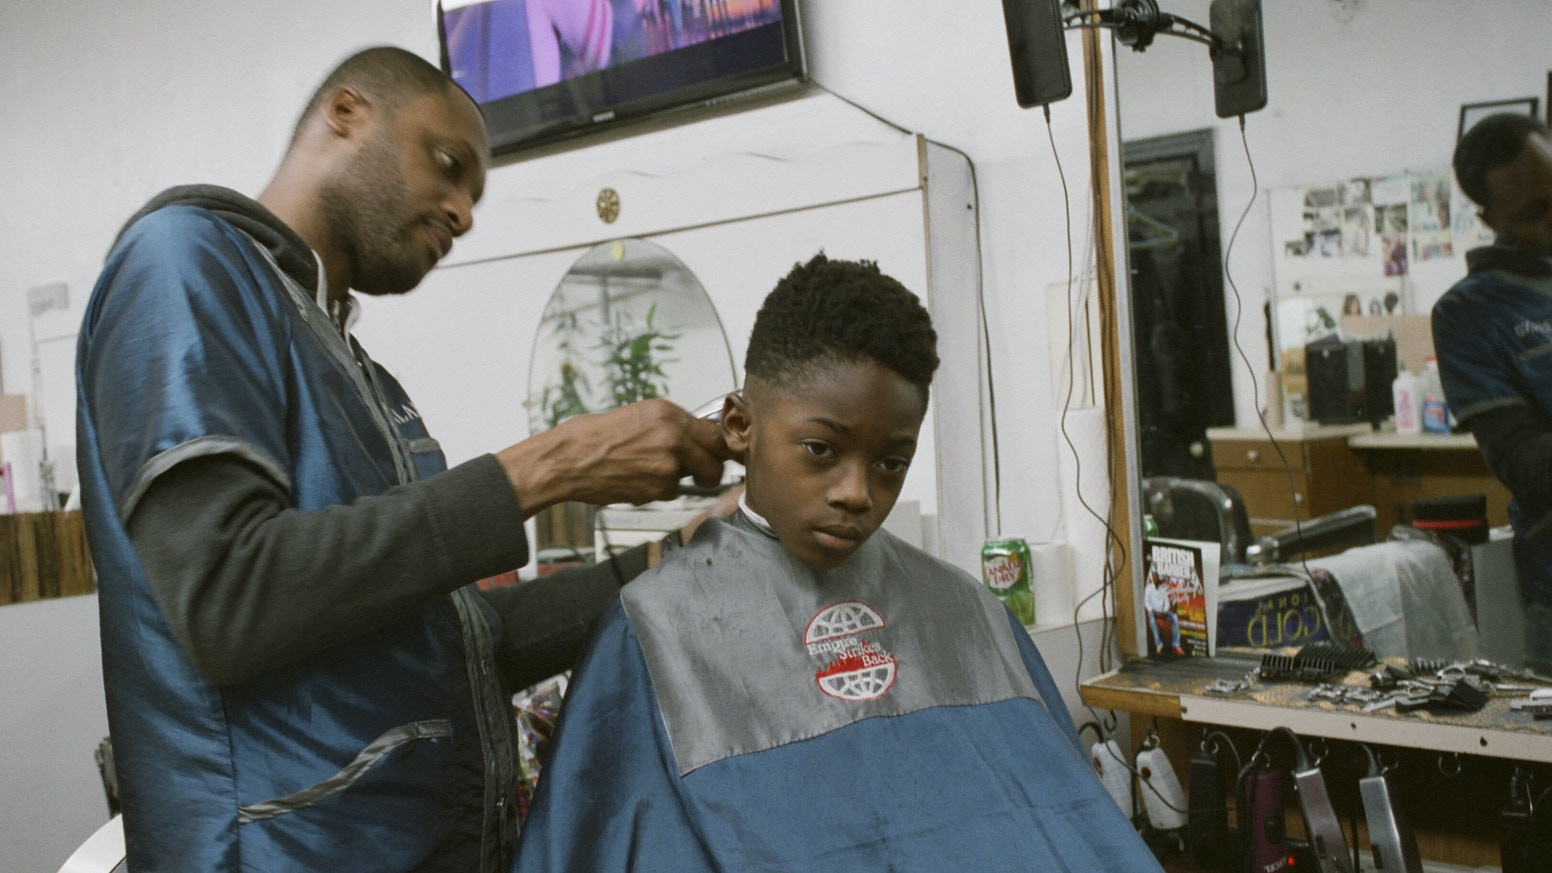 A photographic exploration of the ways communities within black barbershops help cultivate identity and wellness.